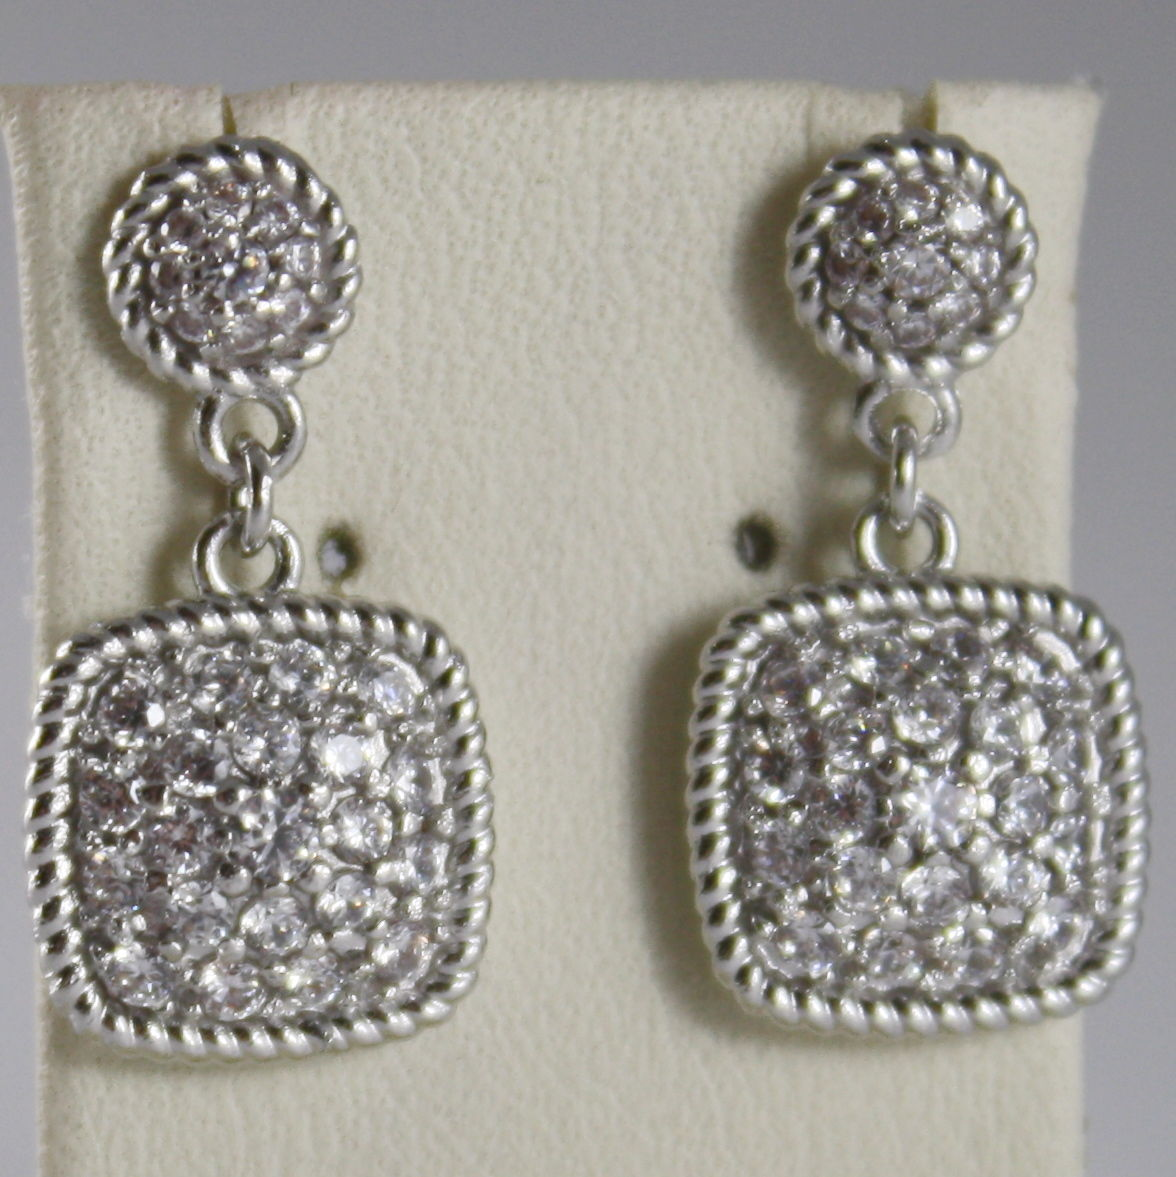 RHODIUM BRONZE EARRINGS SQUARE CUBIC ZIRCONIA B14OBB14, BY REBECCA MADE IN ITALY